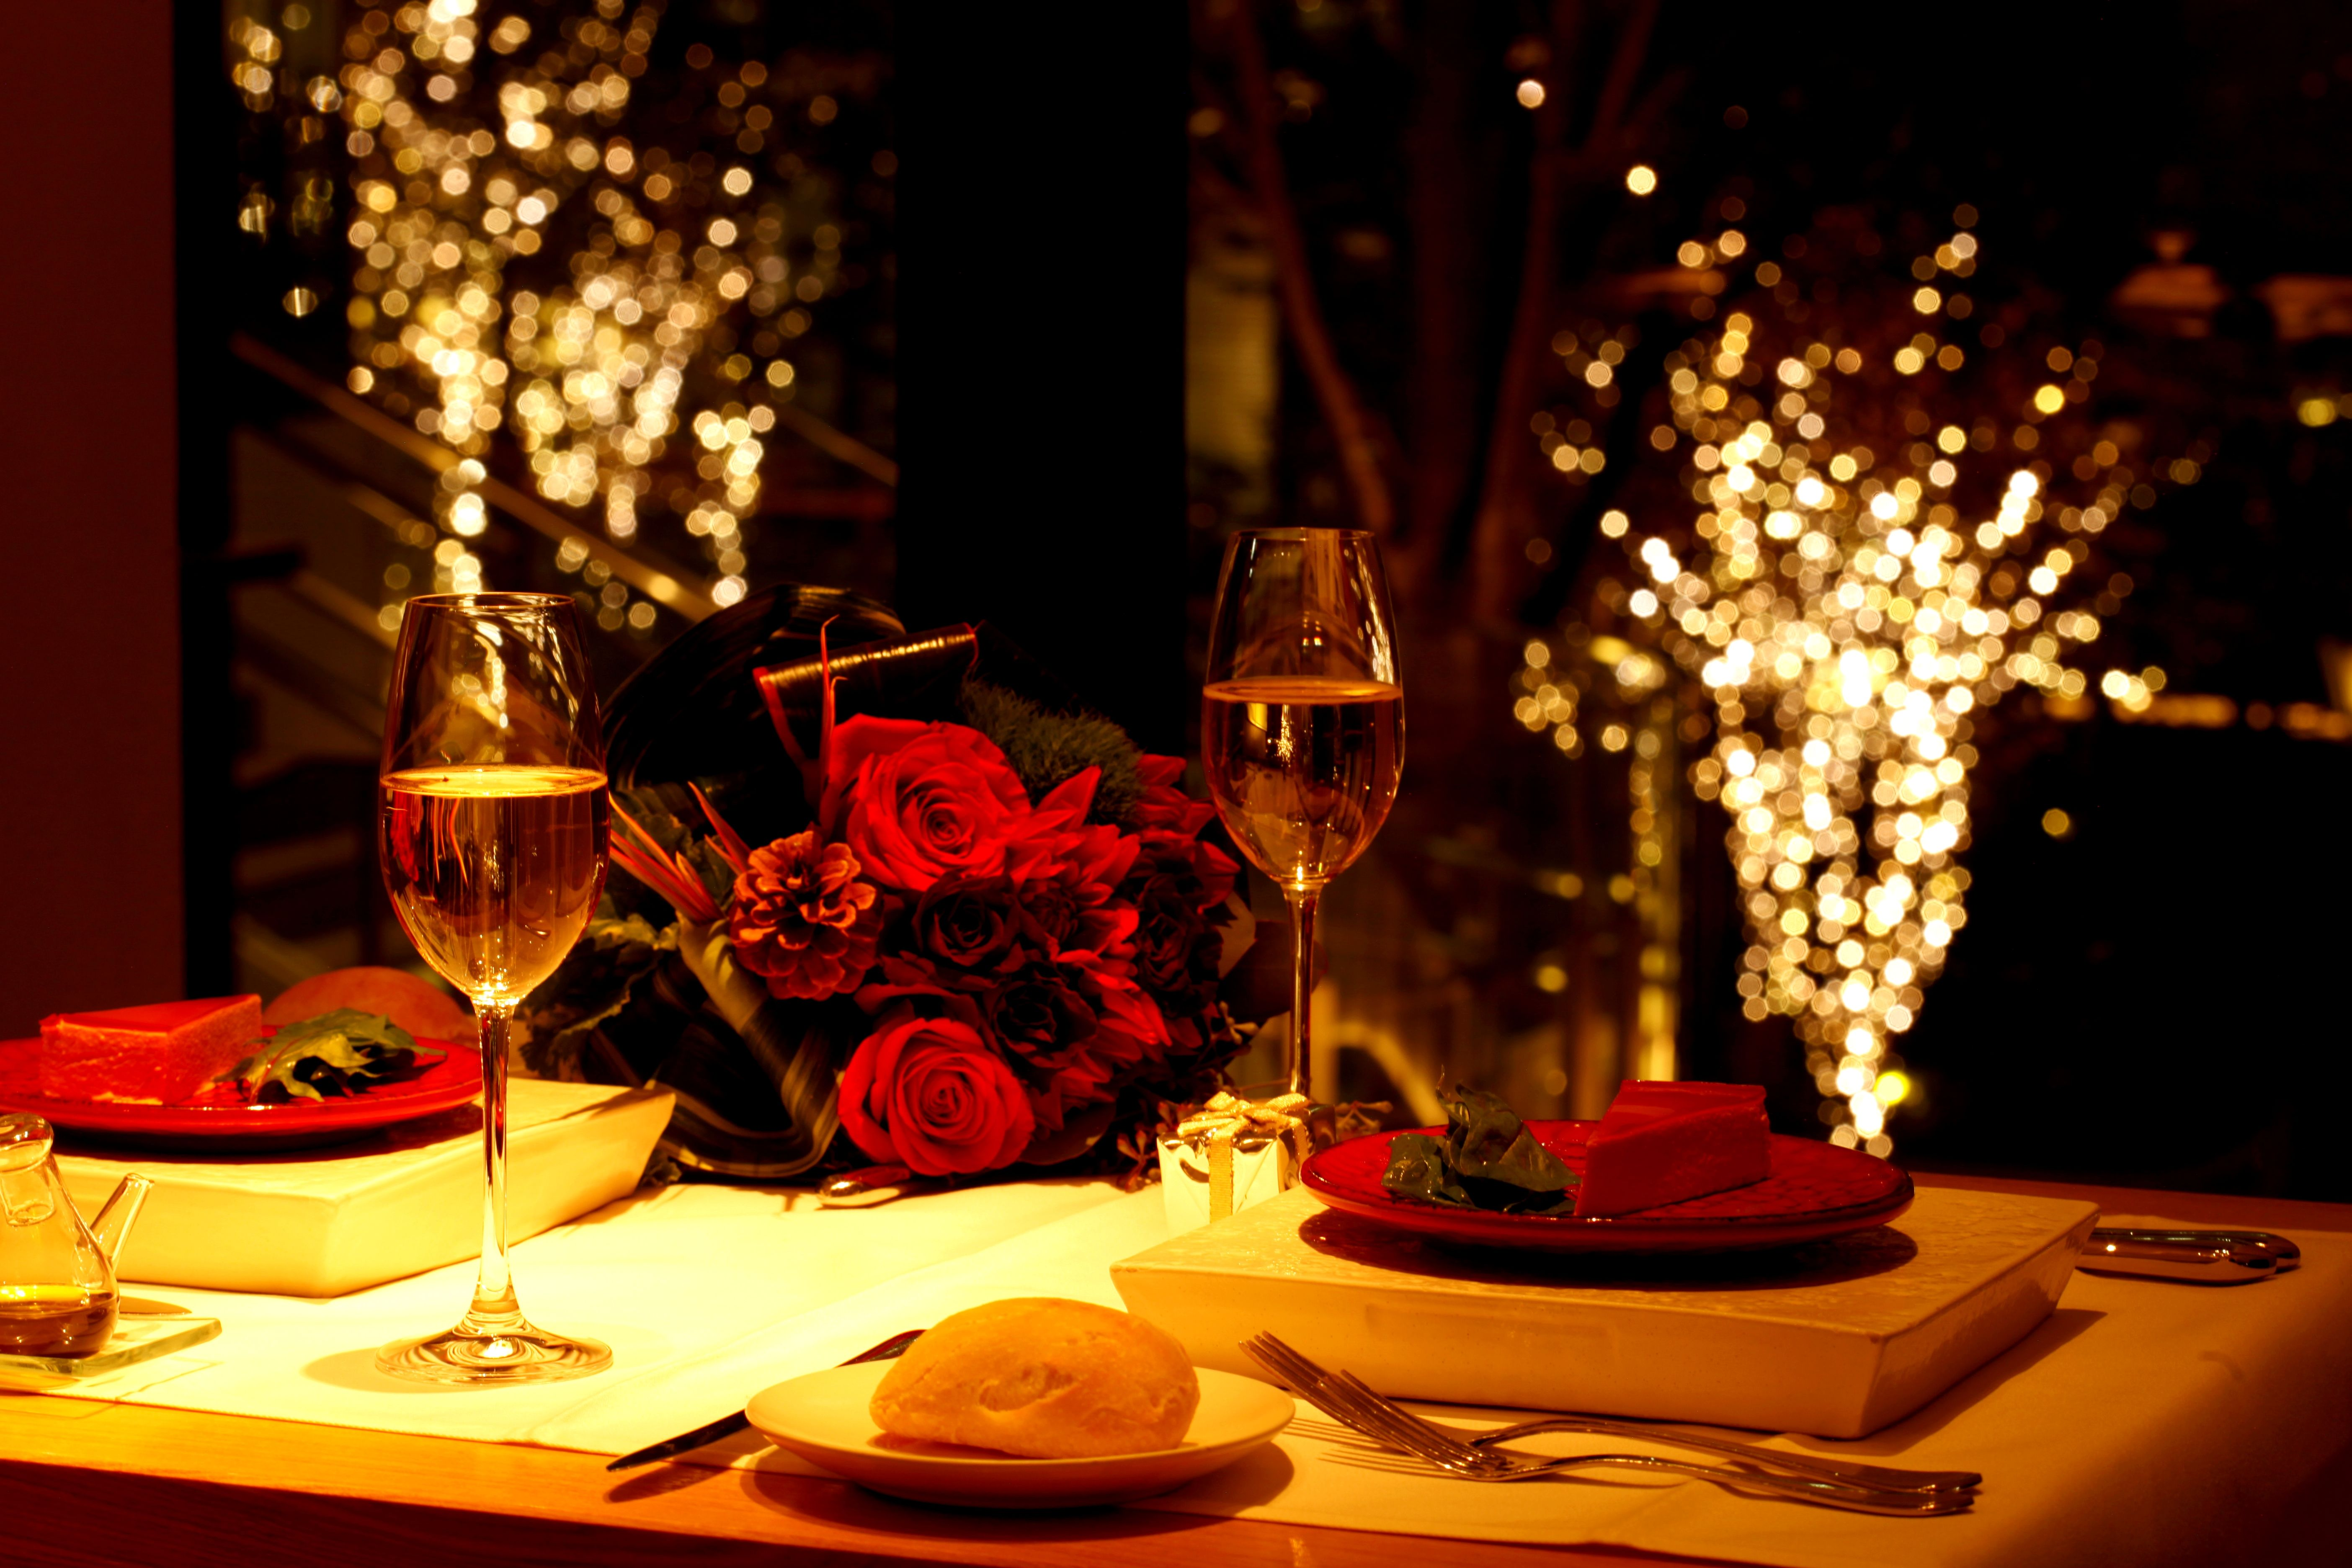 Romantic valentines meals at home - Going Out On A Romantic Dinner Pandoravalentinescontest